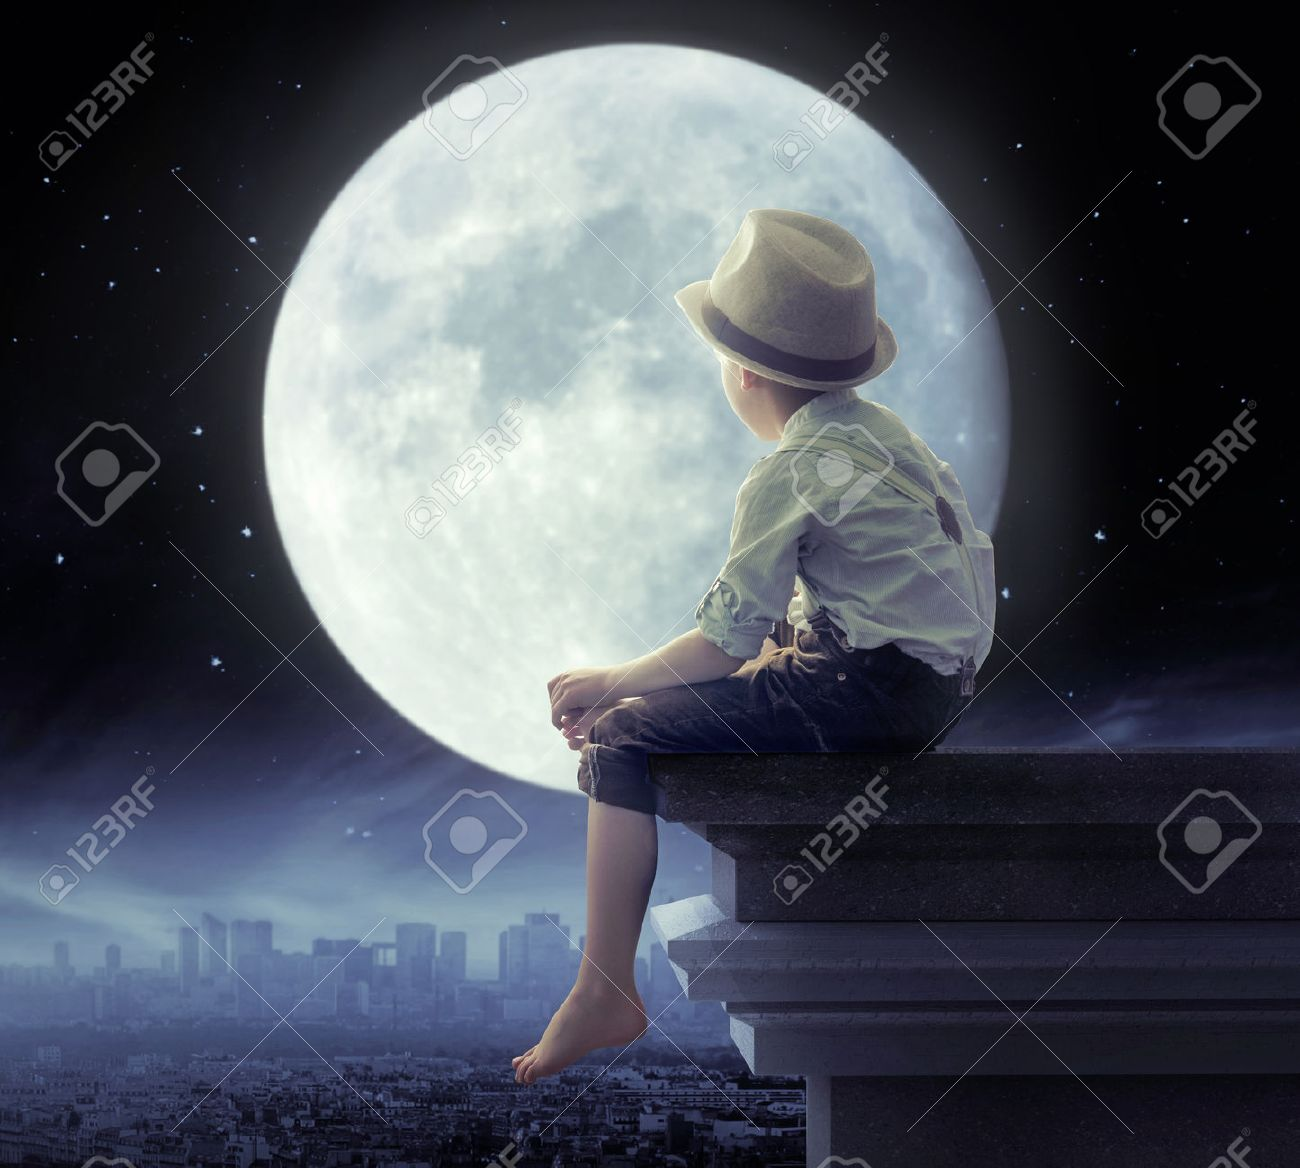 Kids at night with moon royalty free stock photography image - Little Boy Looking A The City In The Night Stock Photo 42115024